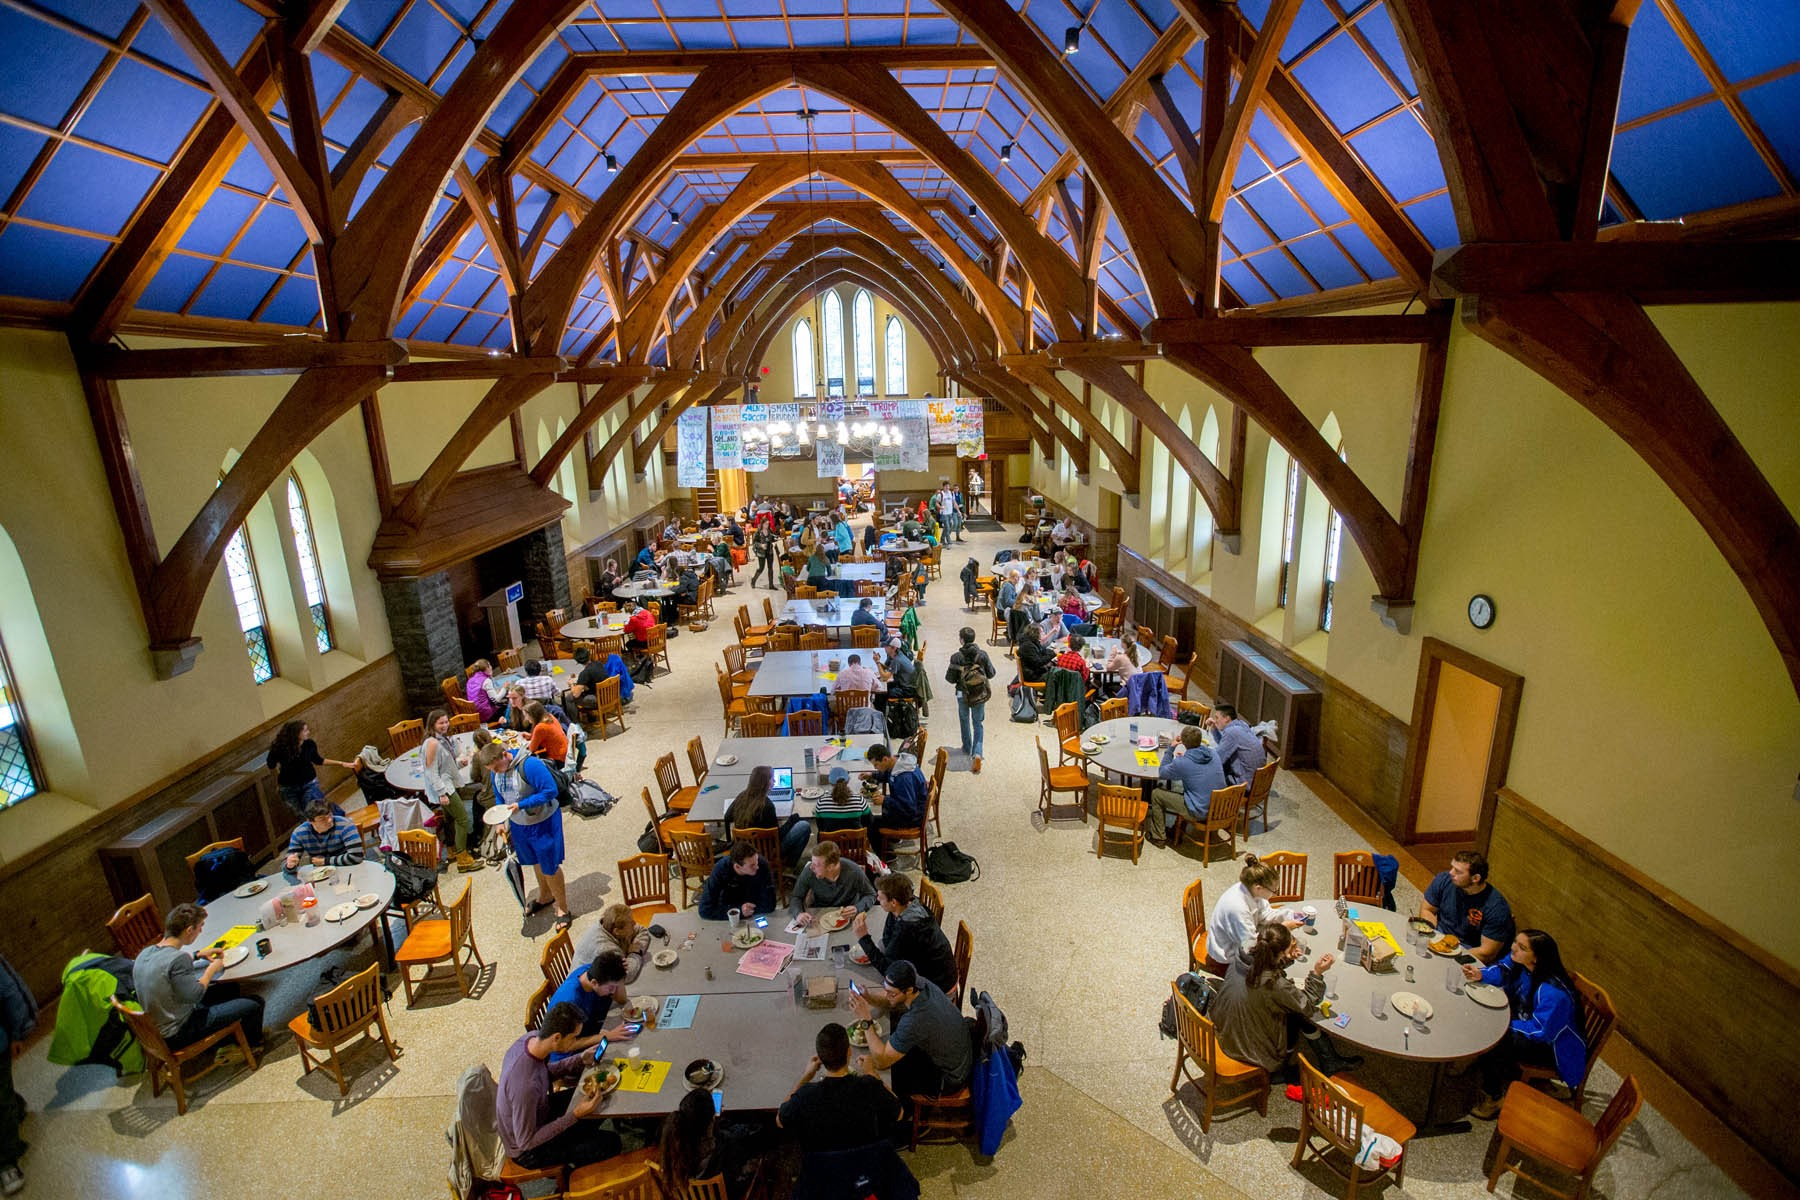 Top 5 Campus Dining Hall Meals By Cliff Musial 21 Staff Writer By The Spectator The Spectator